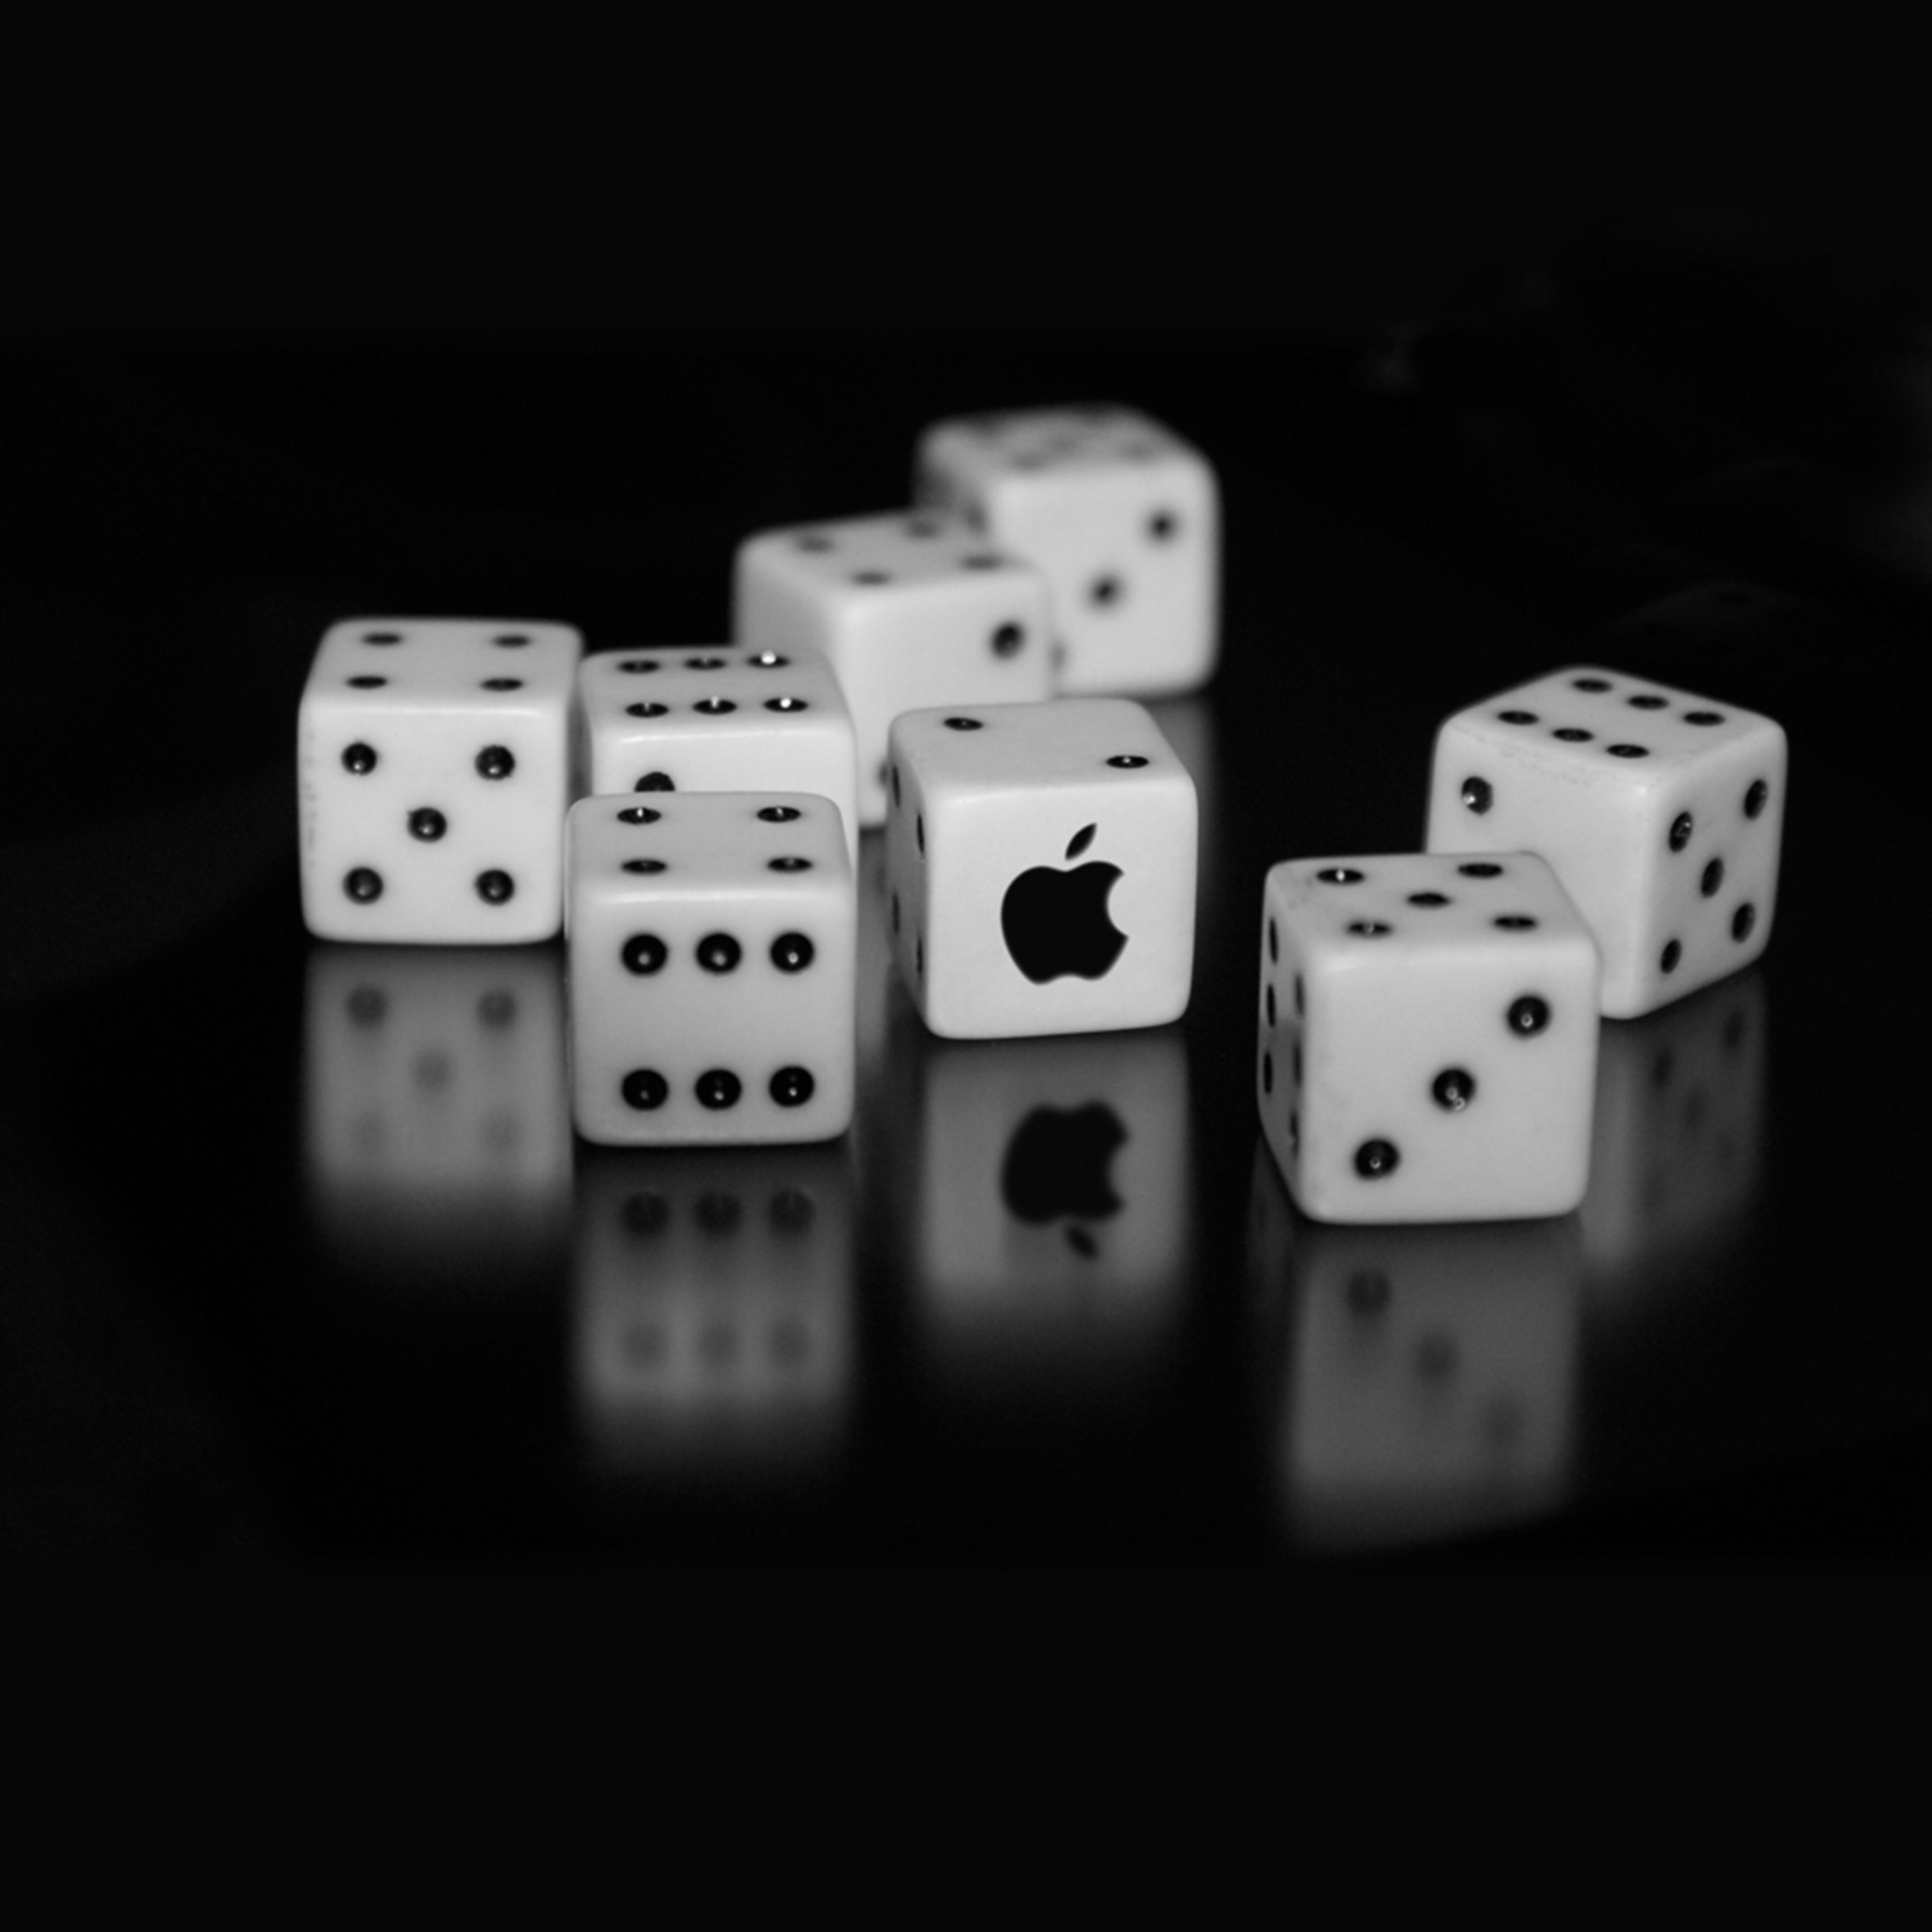 2780x2780 Parallax wallpaper 4k Apple Logo Dice Ipad Wallpaper 2780x2780 pixels resolution